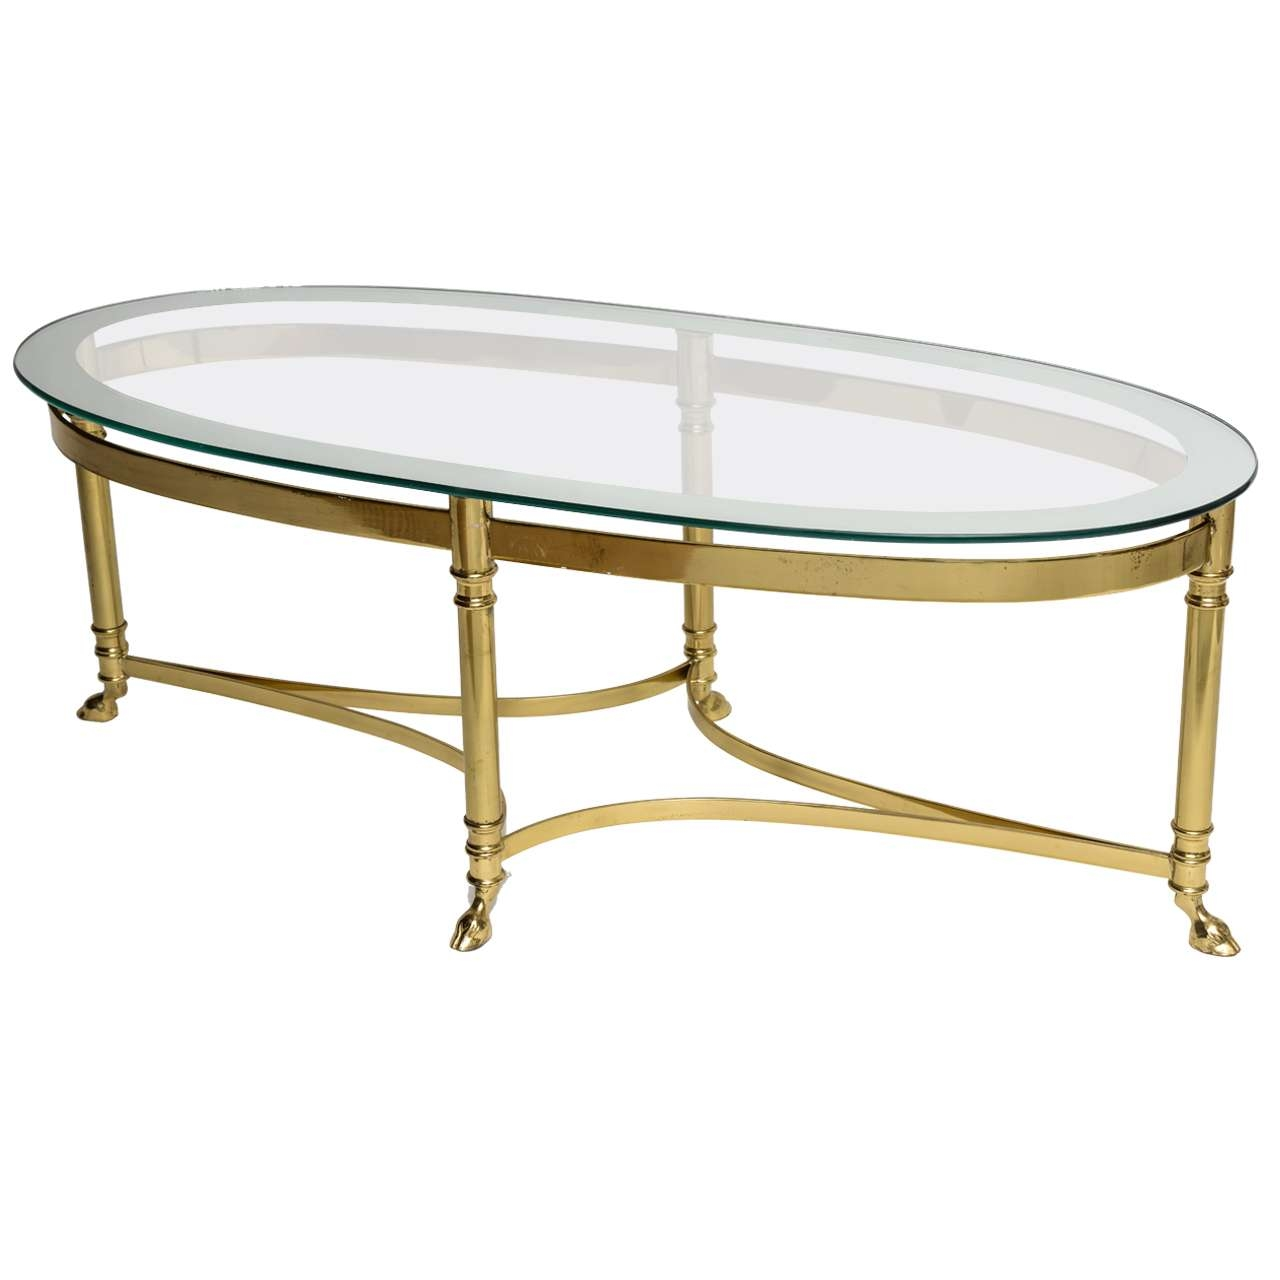 Widely Used Antique Glass Top Coffee Tables Inside Coffee Table: Oval Glass Top Coffee Table Glass For Table Tops (View 10 of 20)